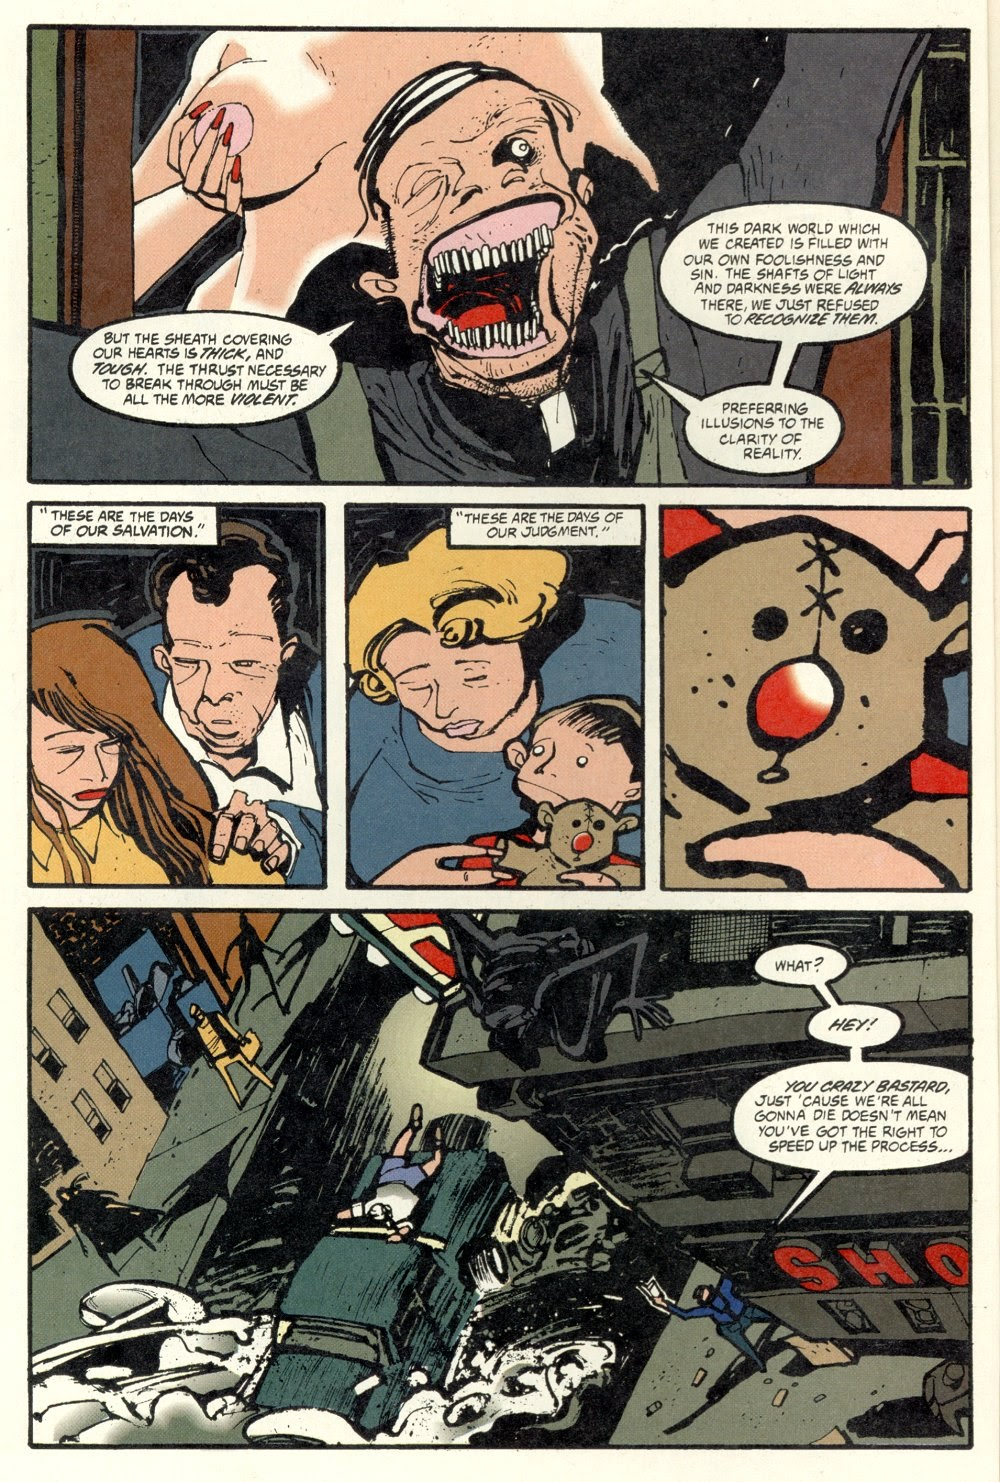 Read online Ted McKeever's Metropol comic -  Issue #10 - 4